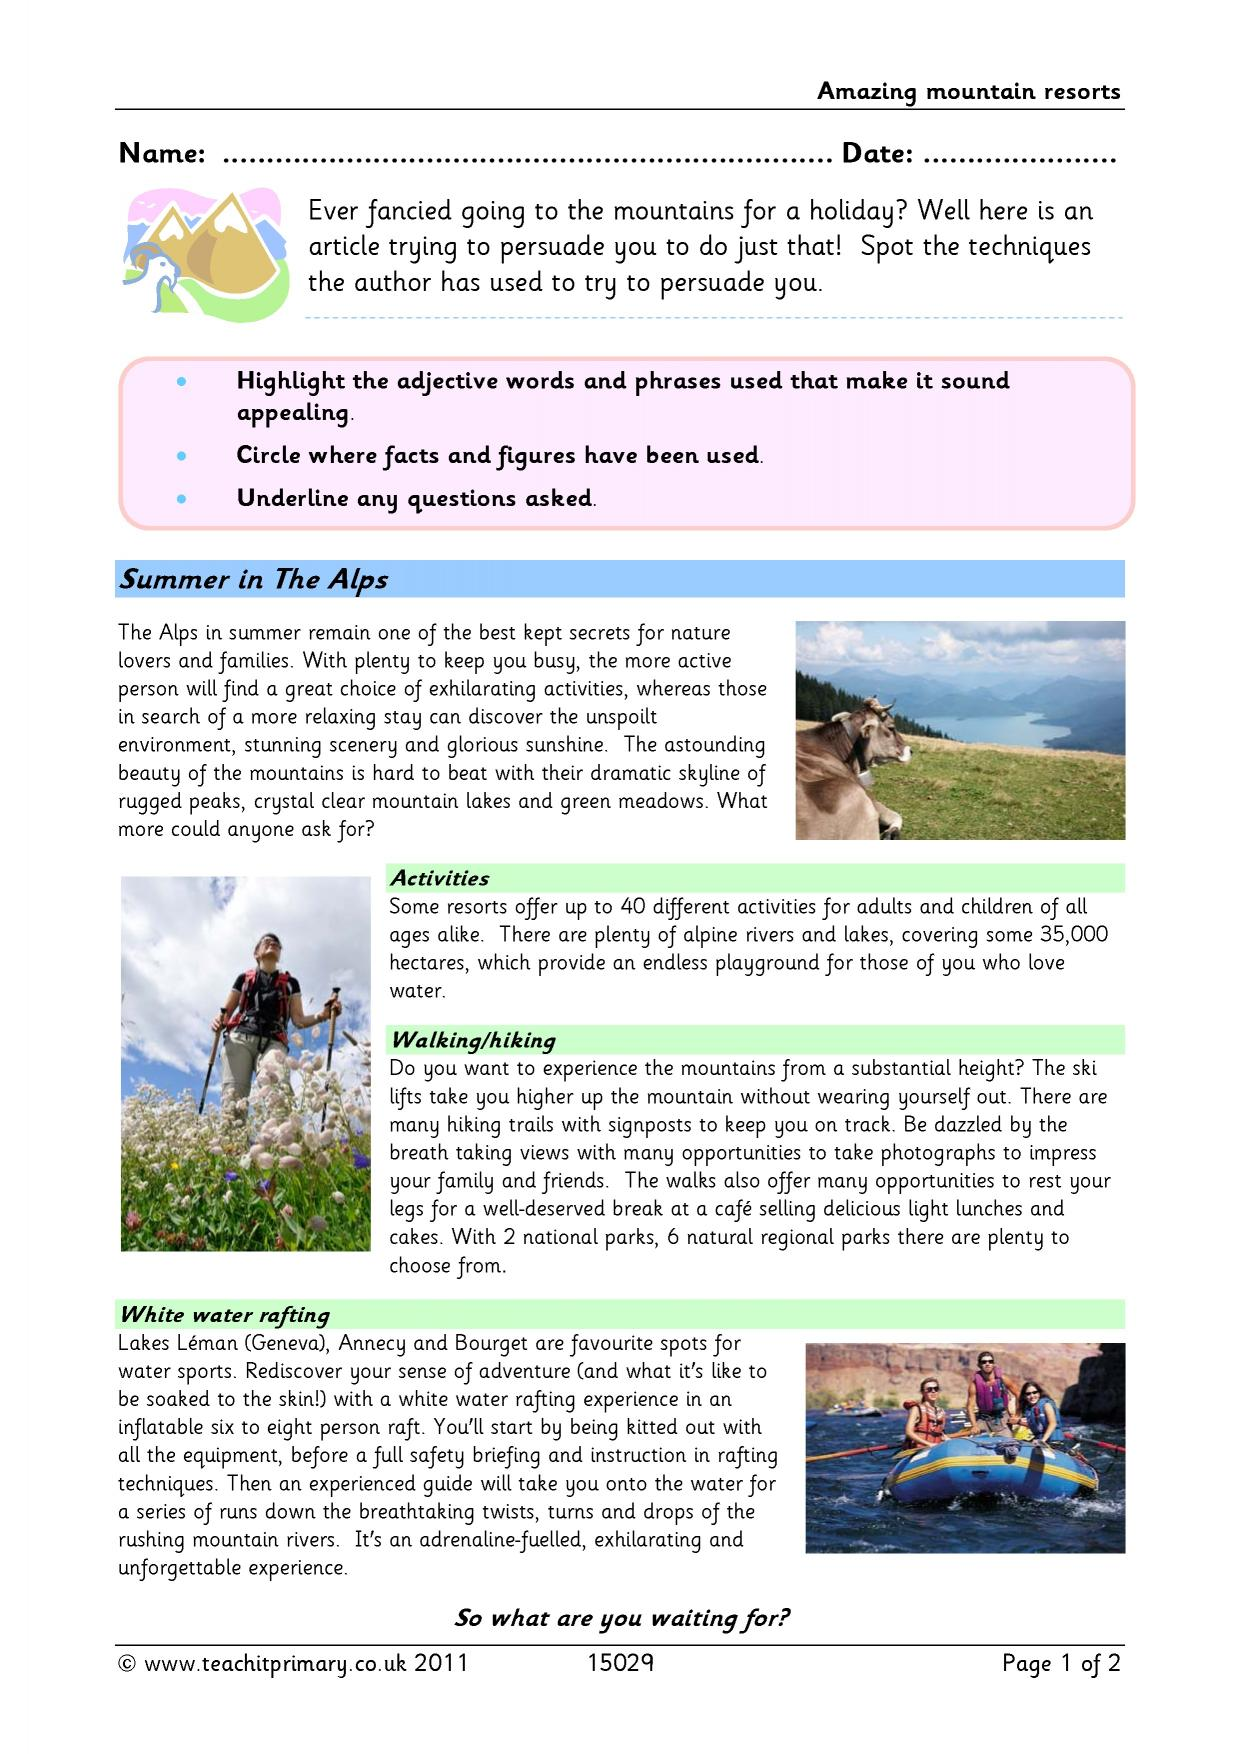 Persuasive writing writing composition ks2 english for Travel brochure template ks2